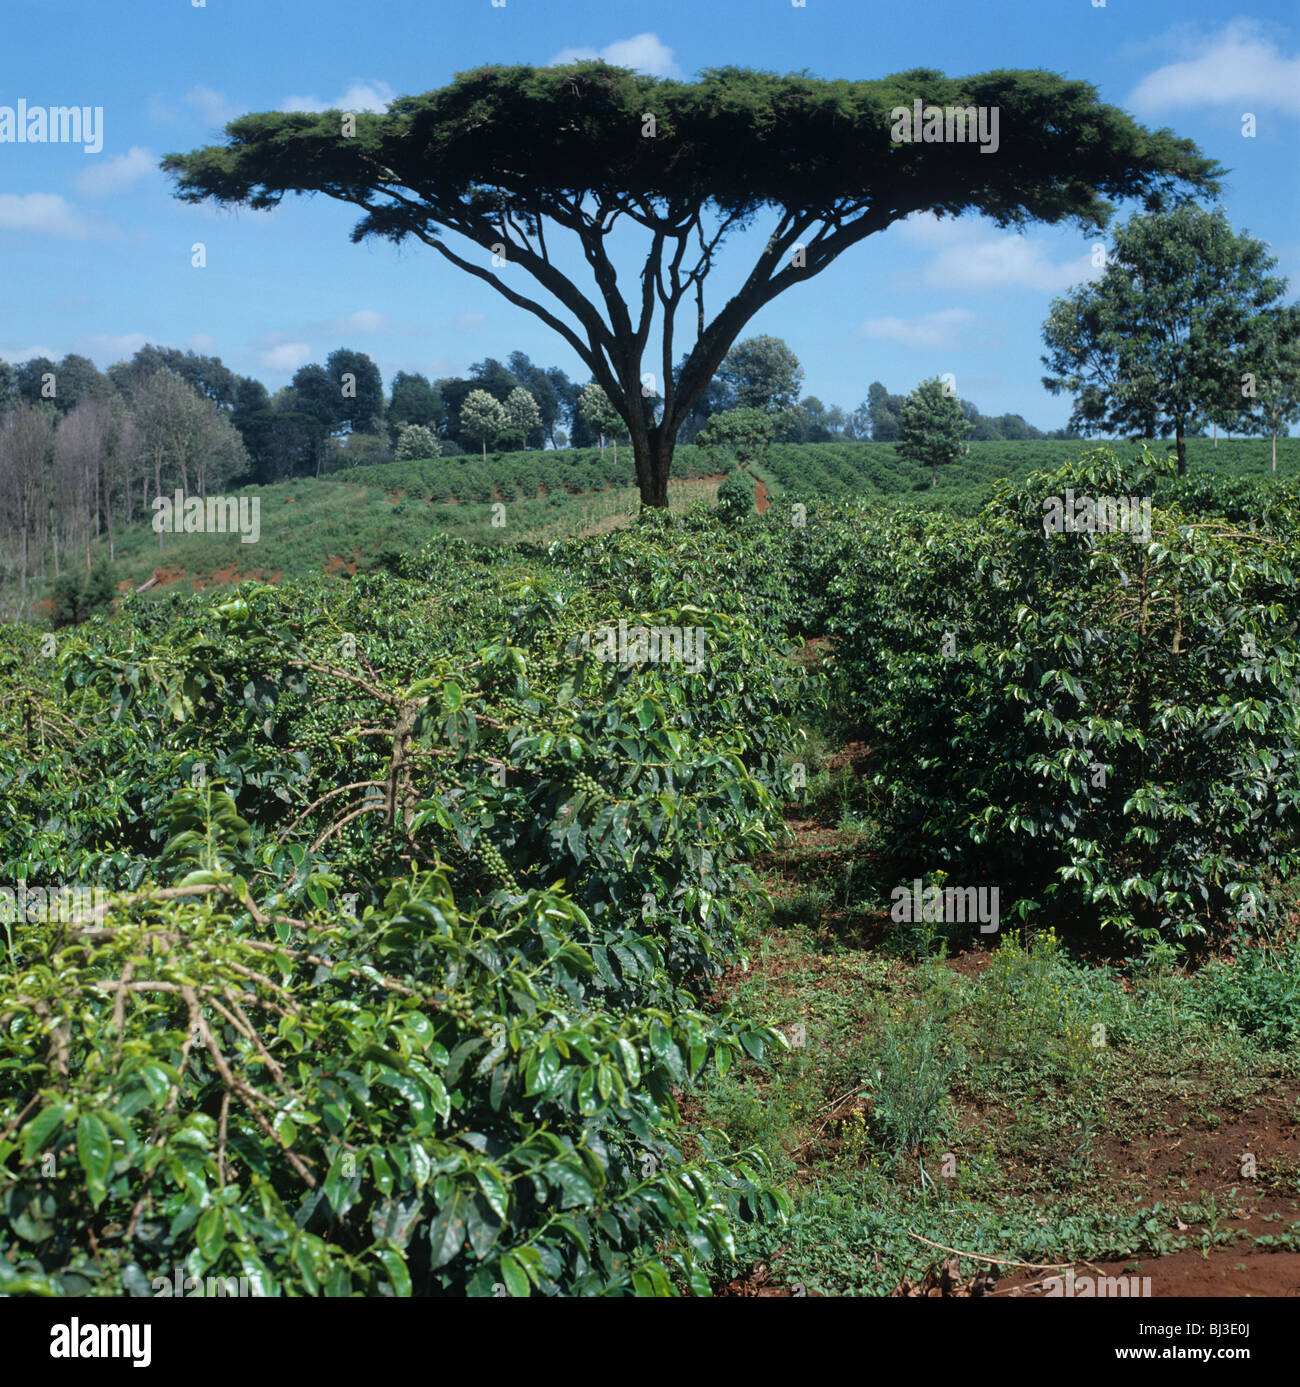 Arabica coffee plantion with Acacia thorn tree near Nairobi, Kenya - Stock Image